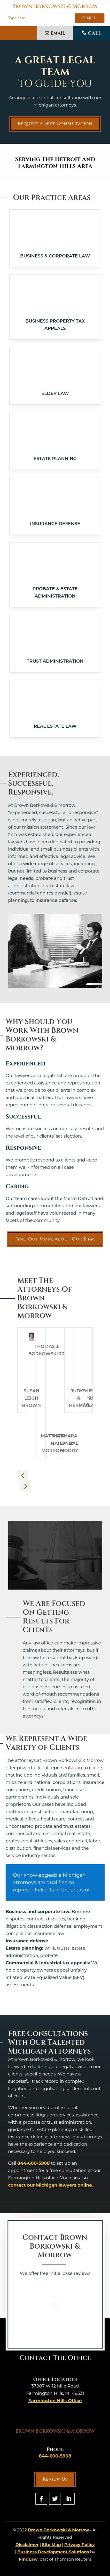 Schwartz Law Firm - Farmington Hills MI Lawyers